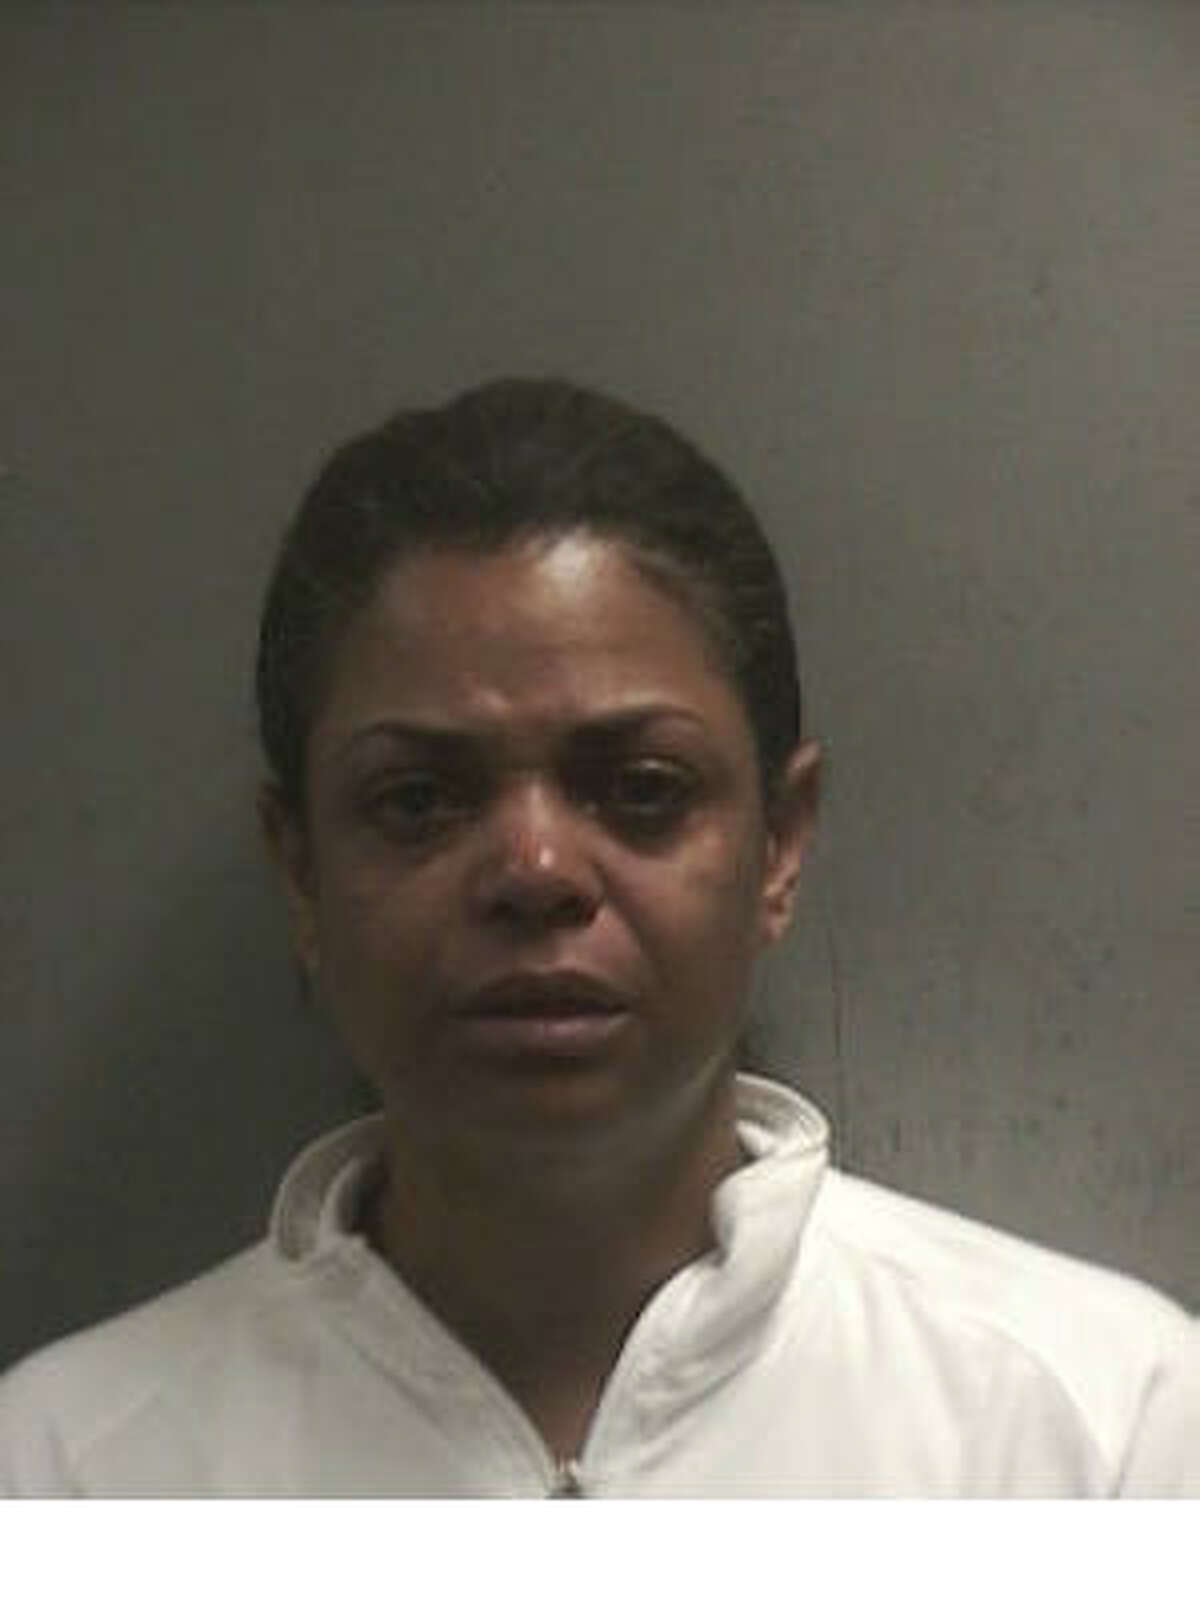 Marcia Sinclair, 43, is accused of embezzling about $6 million from her employer over a four-year period.